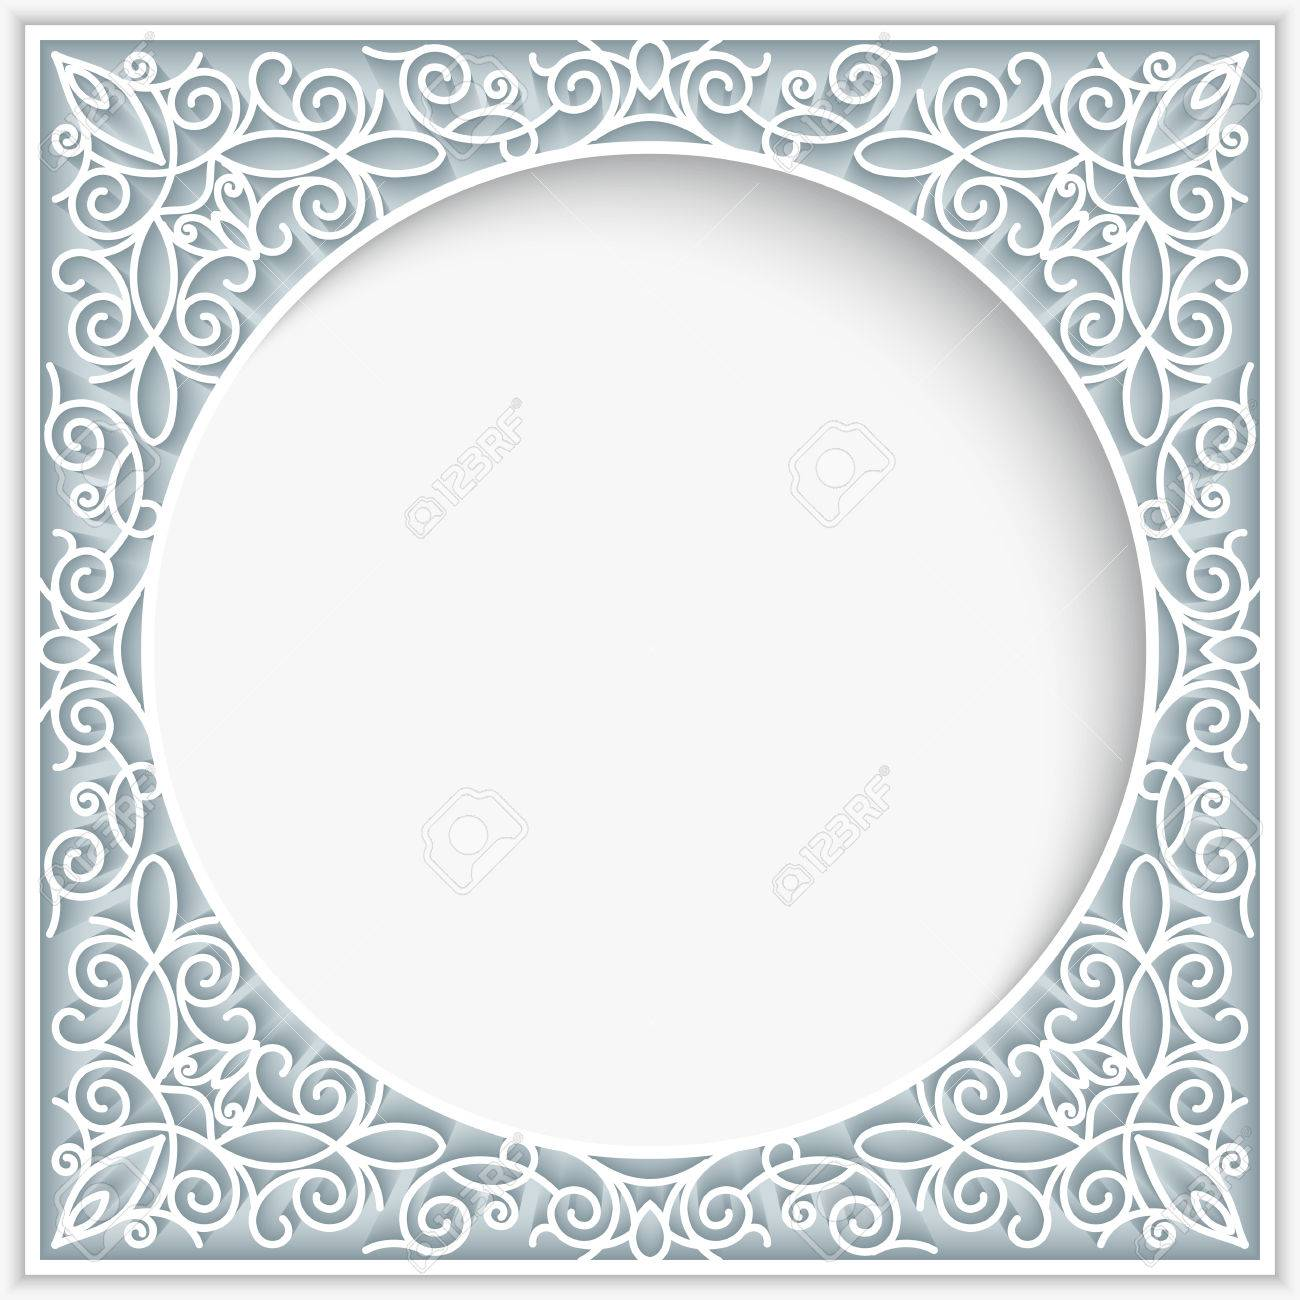 Abstract frame with paper swirls, ornamental lace background - 52369611